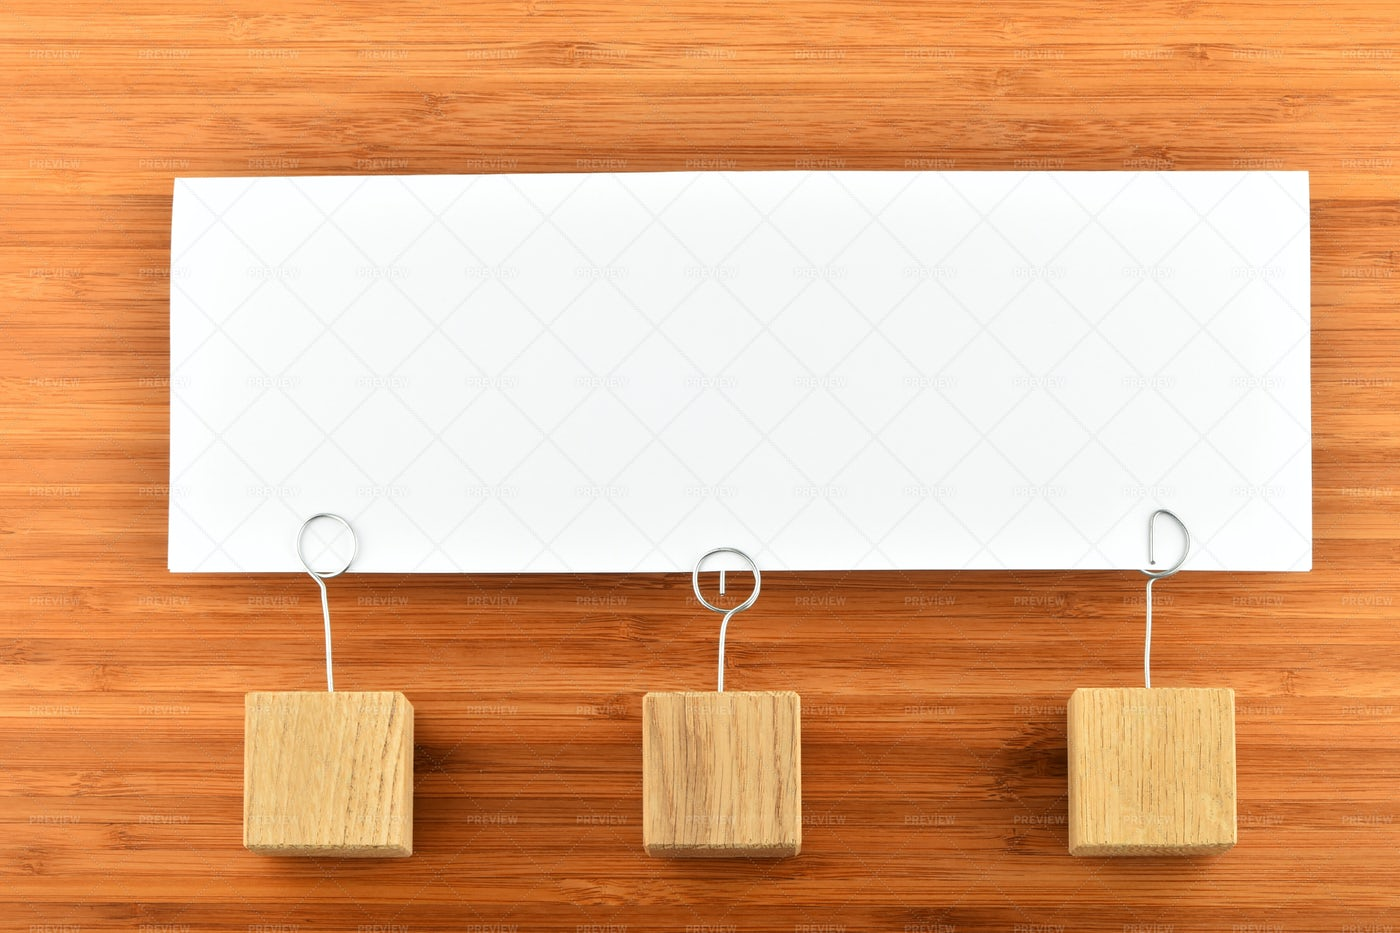 Paper Note With Three Holders: Stock Photos